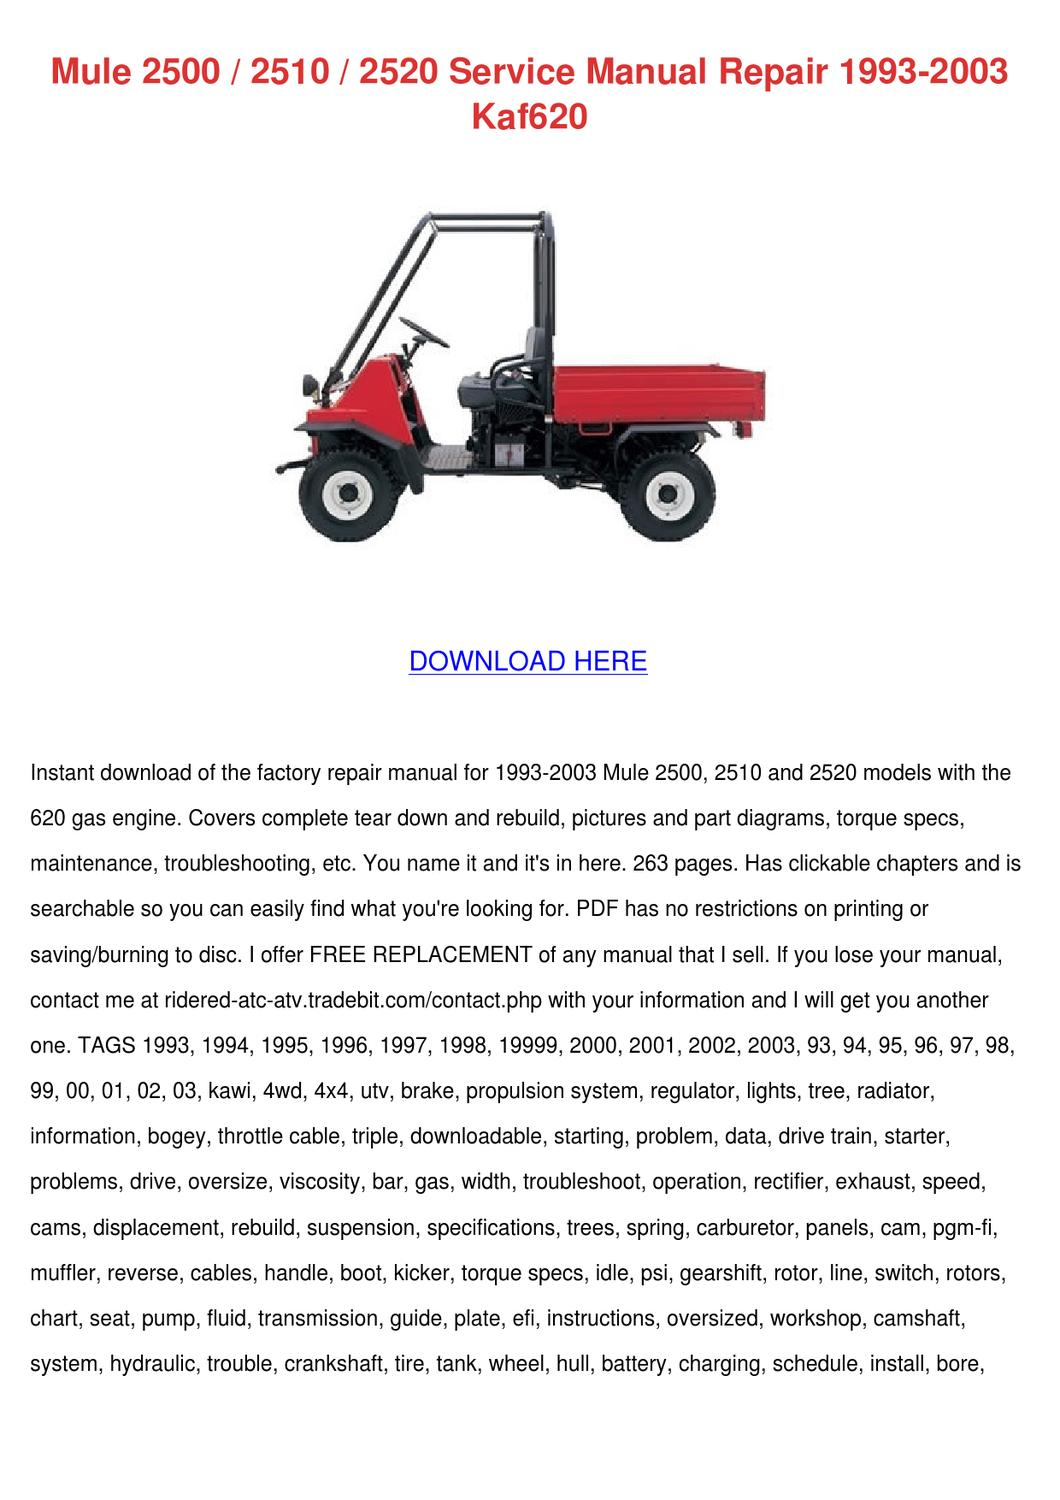 1999 Kawasaki Mule 2510 Torque Specs Wiring Diagram Service Manual Repair Kathryn Gressman Issuu Com Specifications